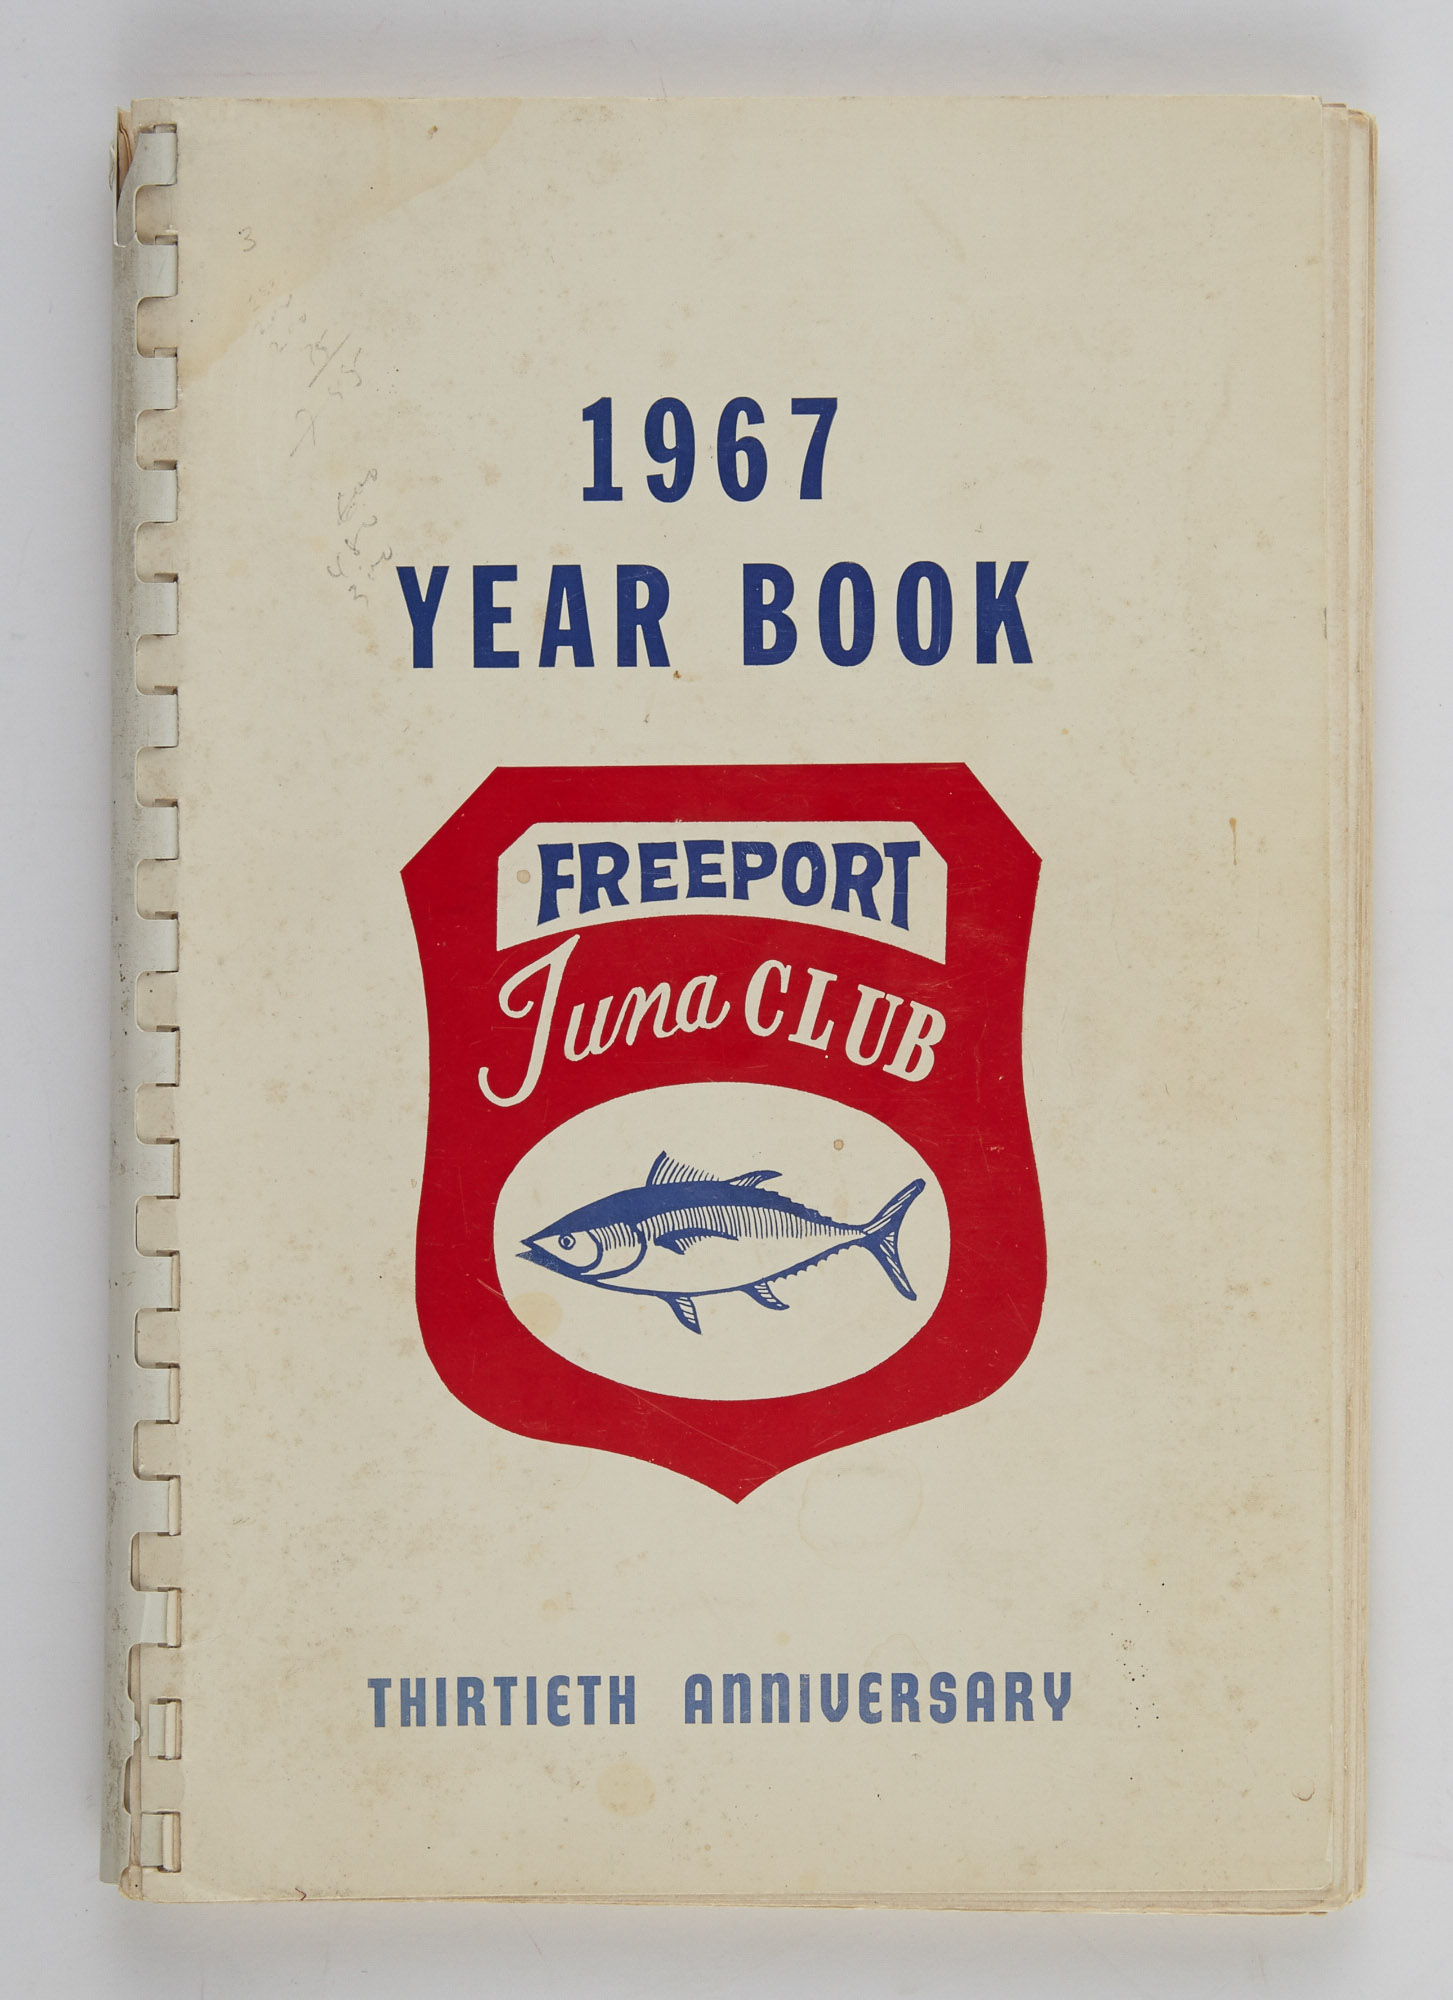 Lot image - [ANGLING CLUB]  Freeport Tuna Club 1967 Year Book. Thirtieth Anniversary.